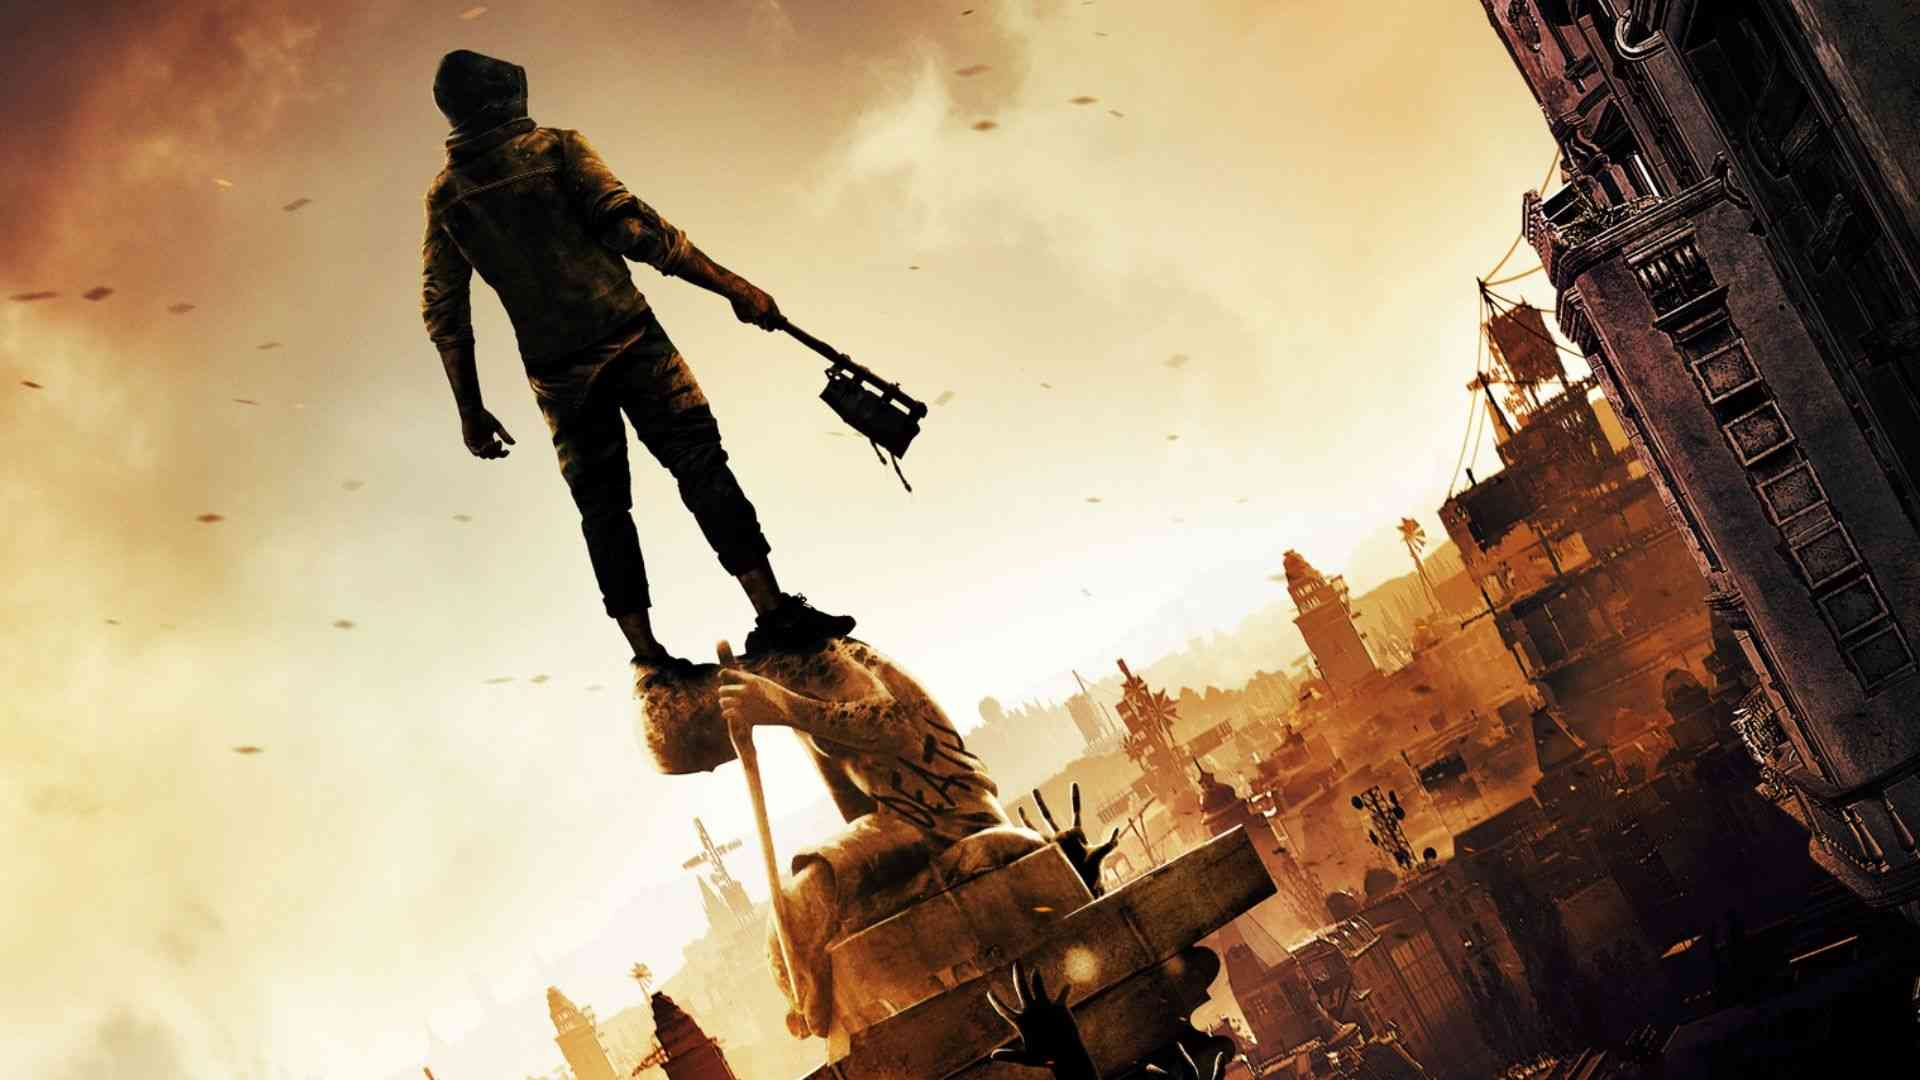 Dying Light 2 release date is announced, coming in 2020 - PLAY4UK